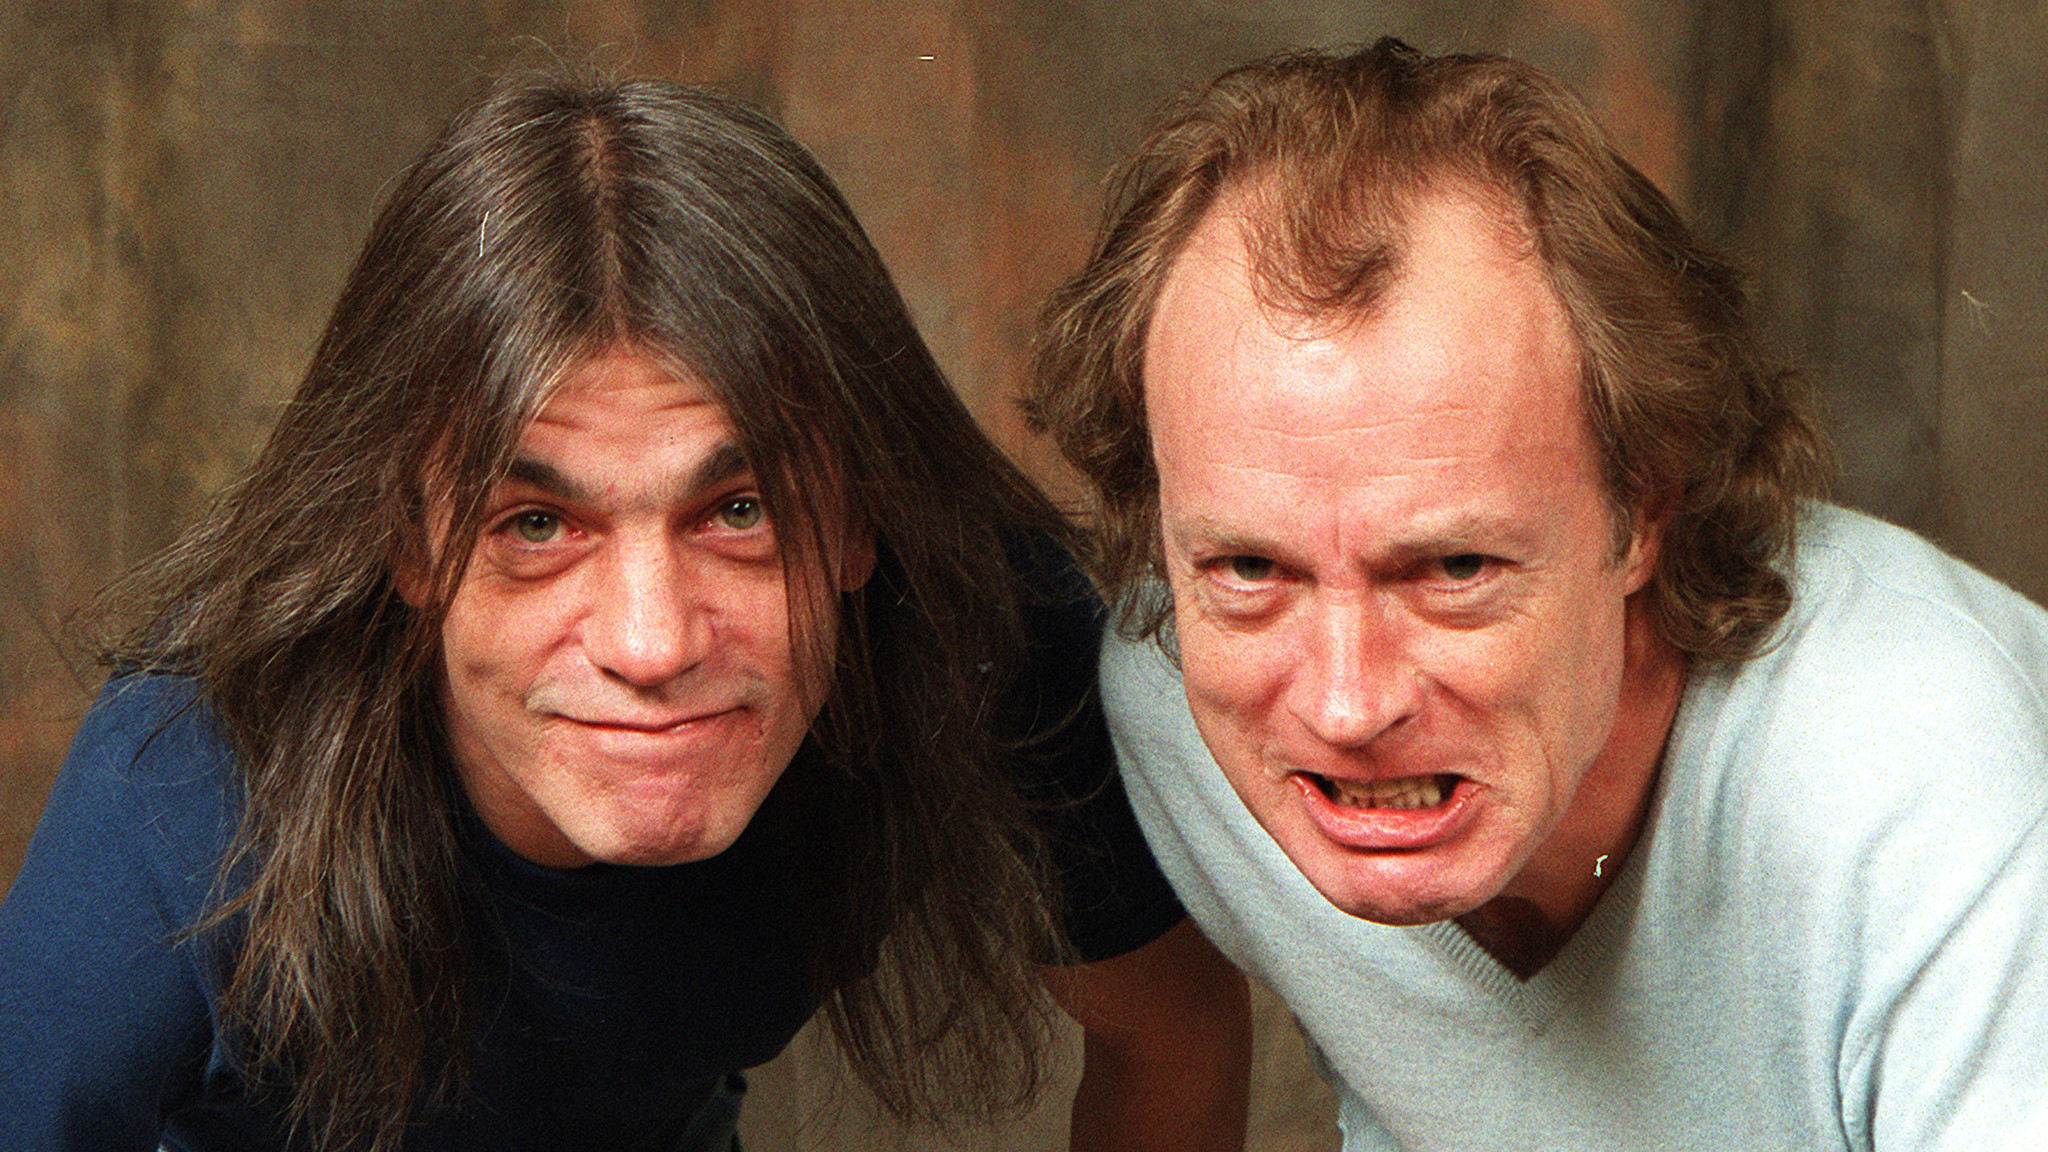 malcolm and angus young photo jaime sabau for the l a times The 10 Best Bands with Siblings